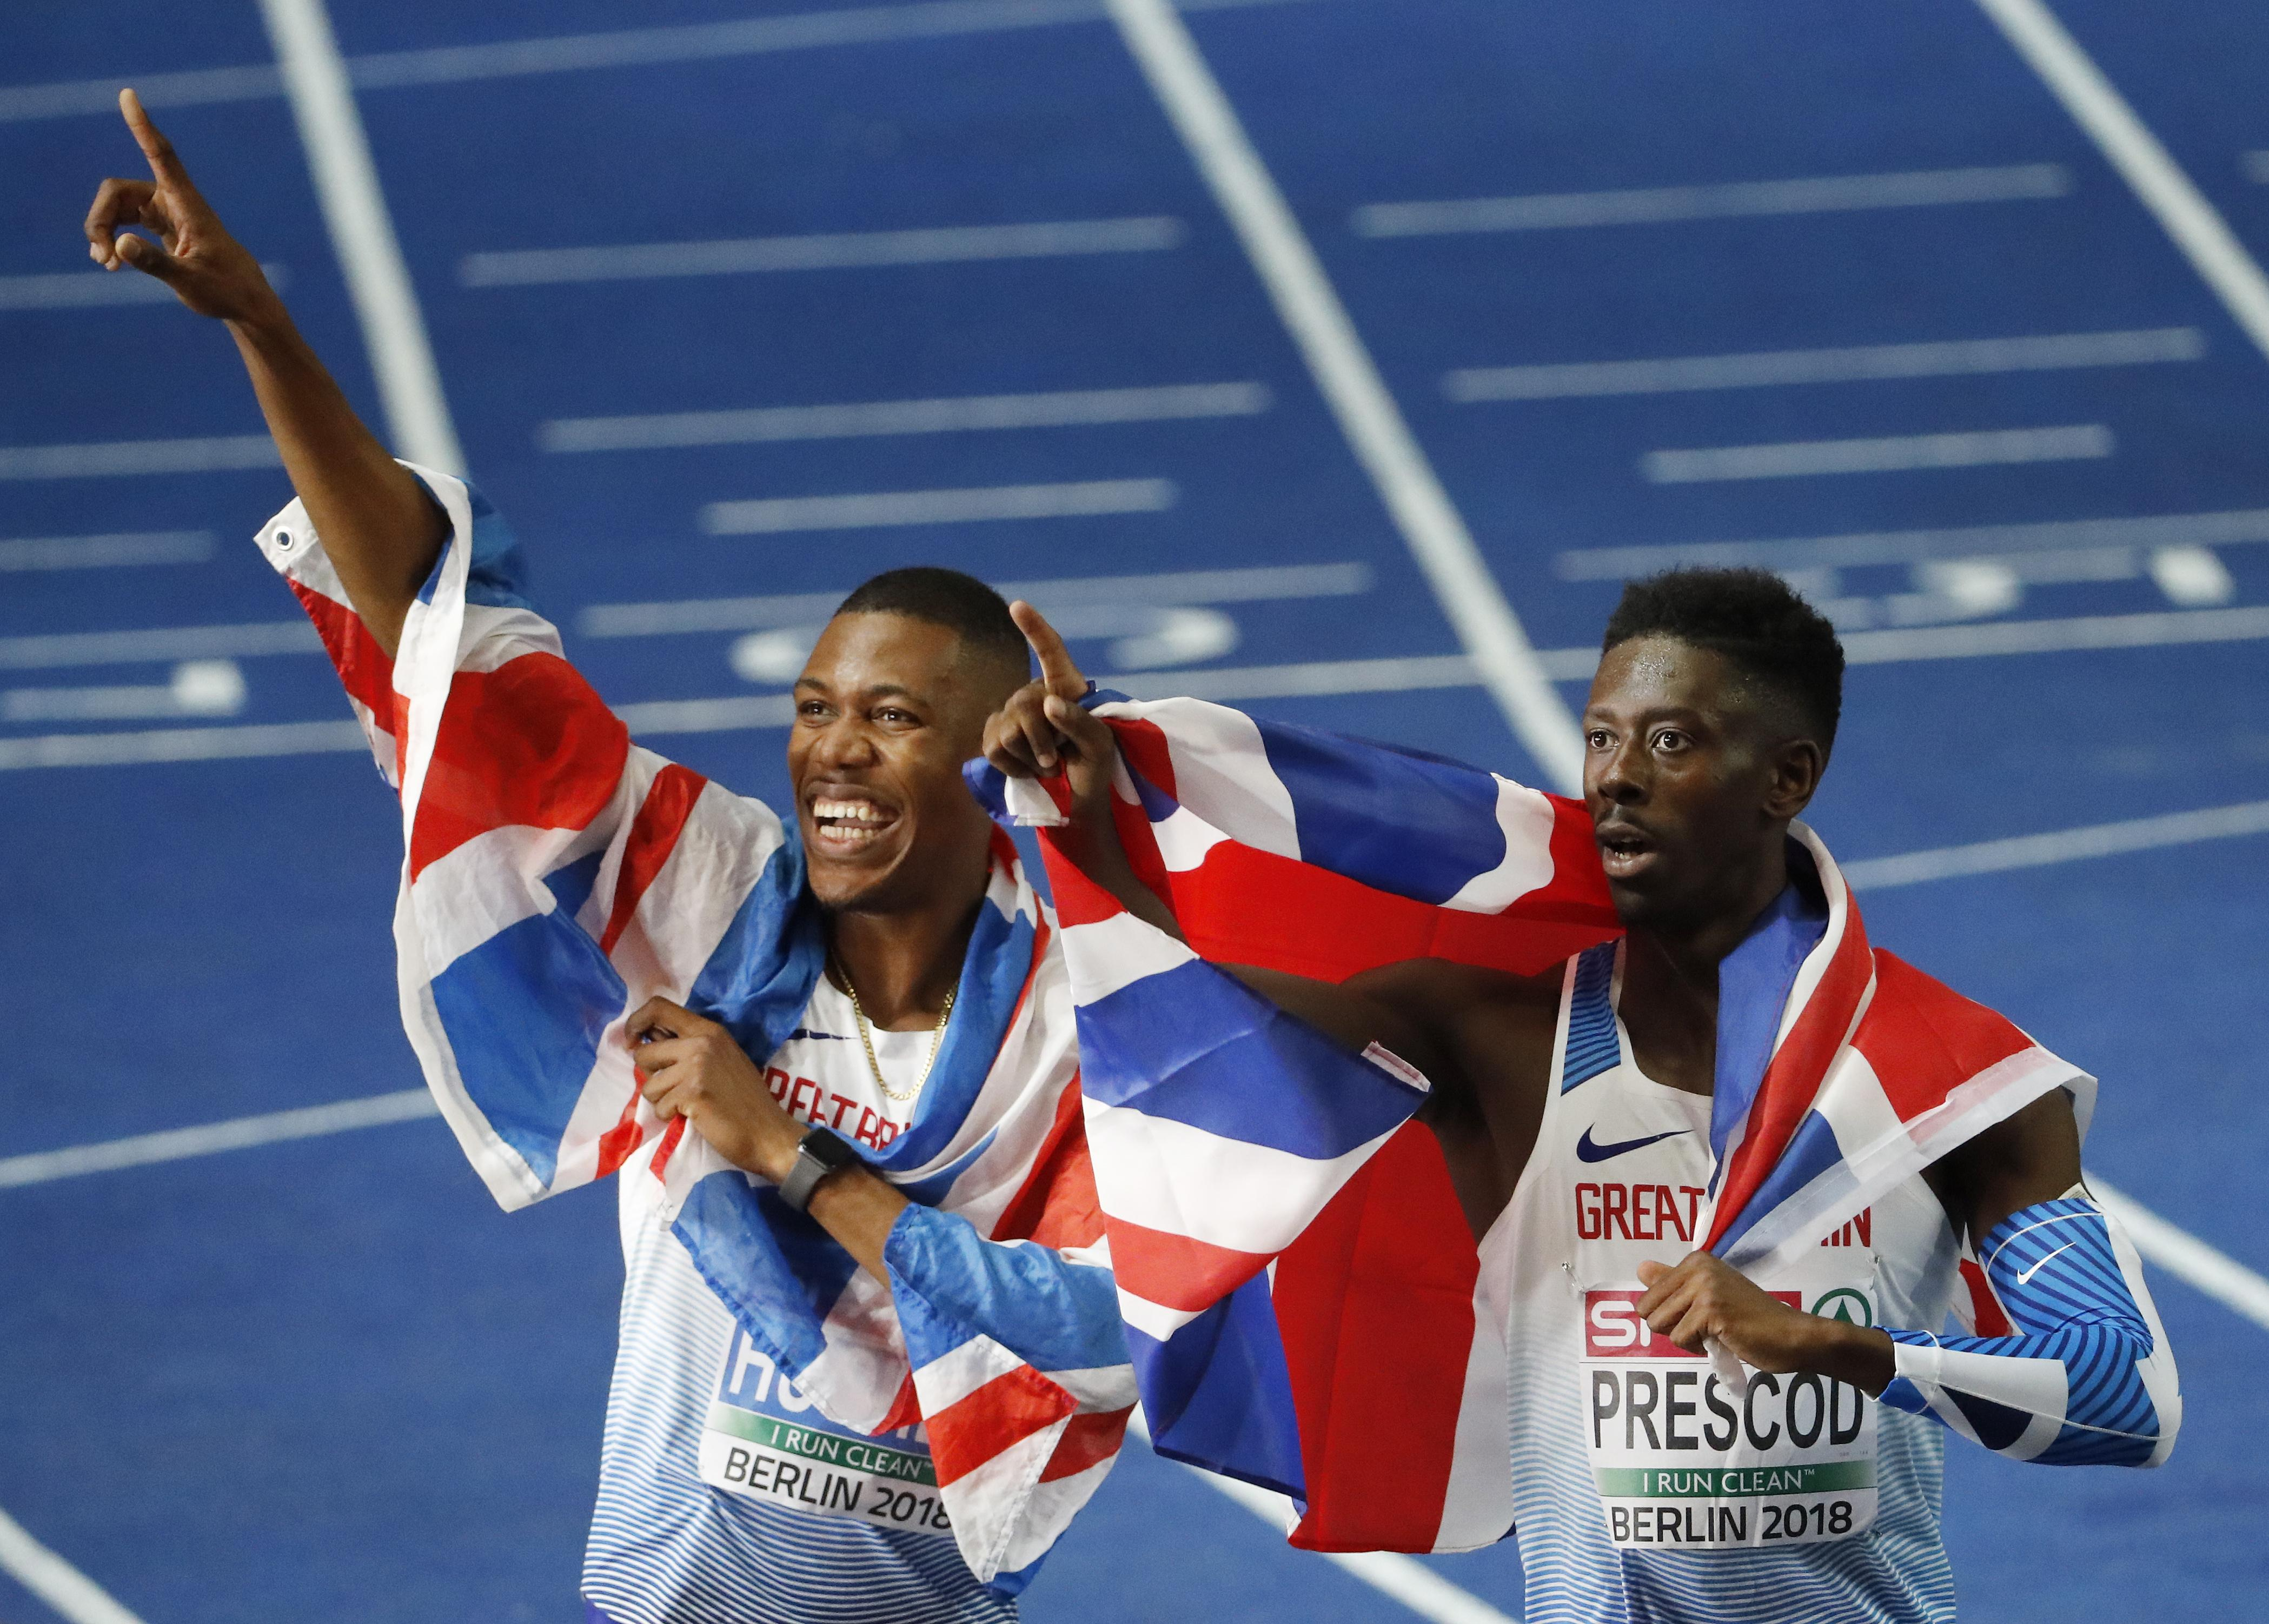 Hughes and Prescod celebrated together with Union Jacks over their shoulders